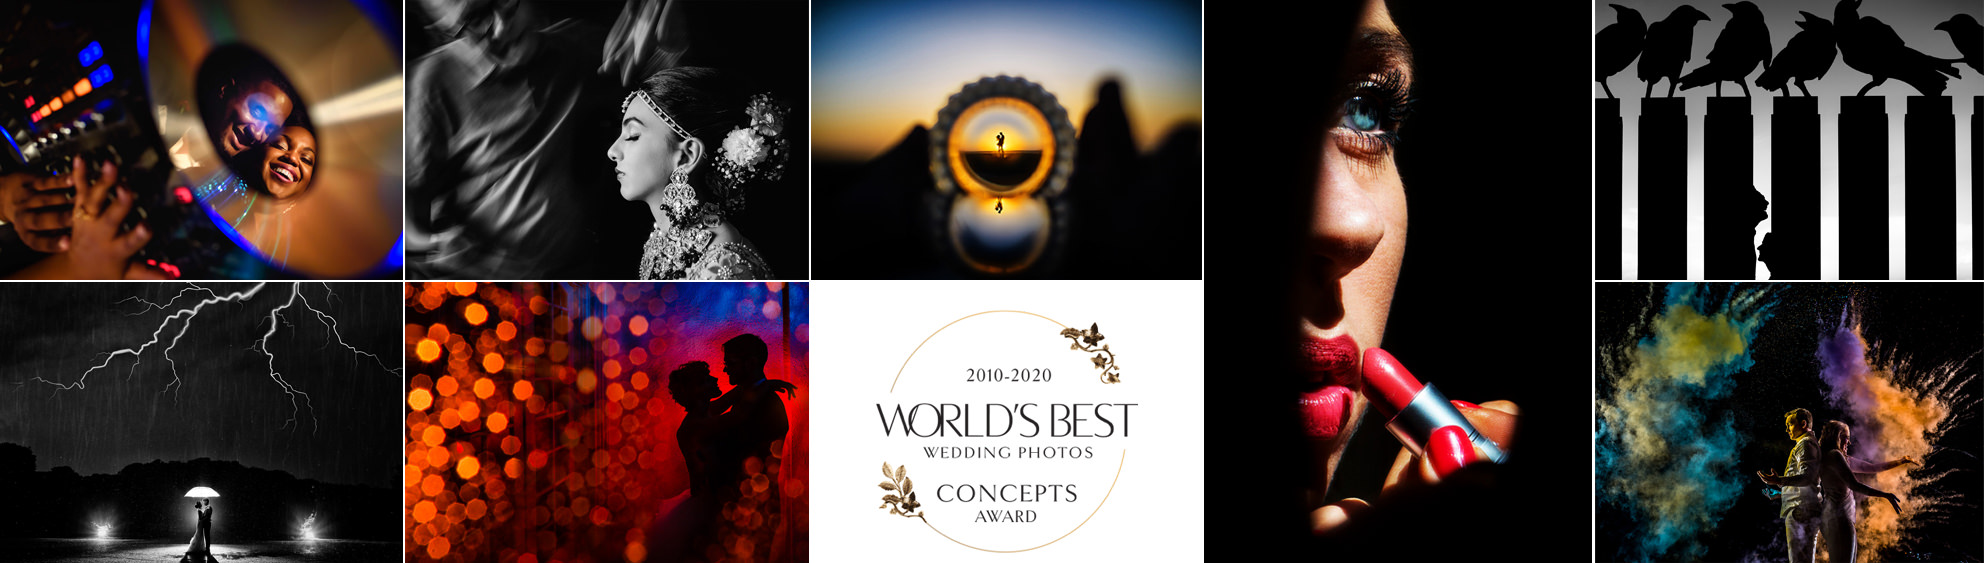 World's Best Wedding Photos Brilliant Concepts Contest